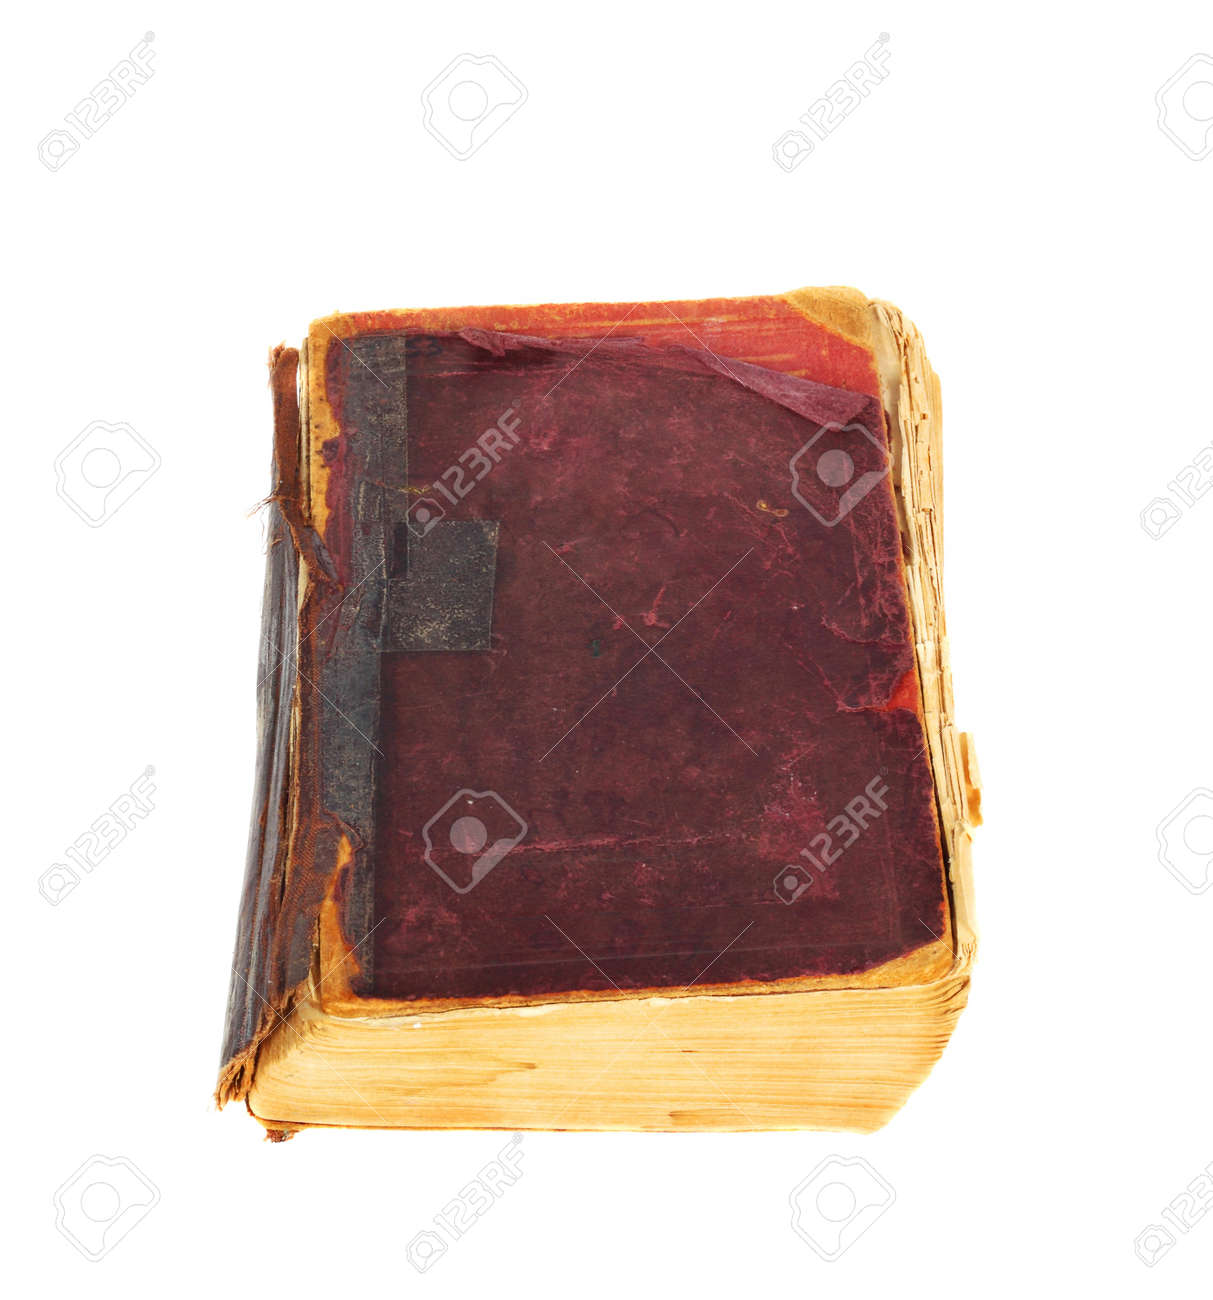 Vintage book in a bad condition isolated on white background Stock Photo - 17218276